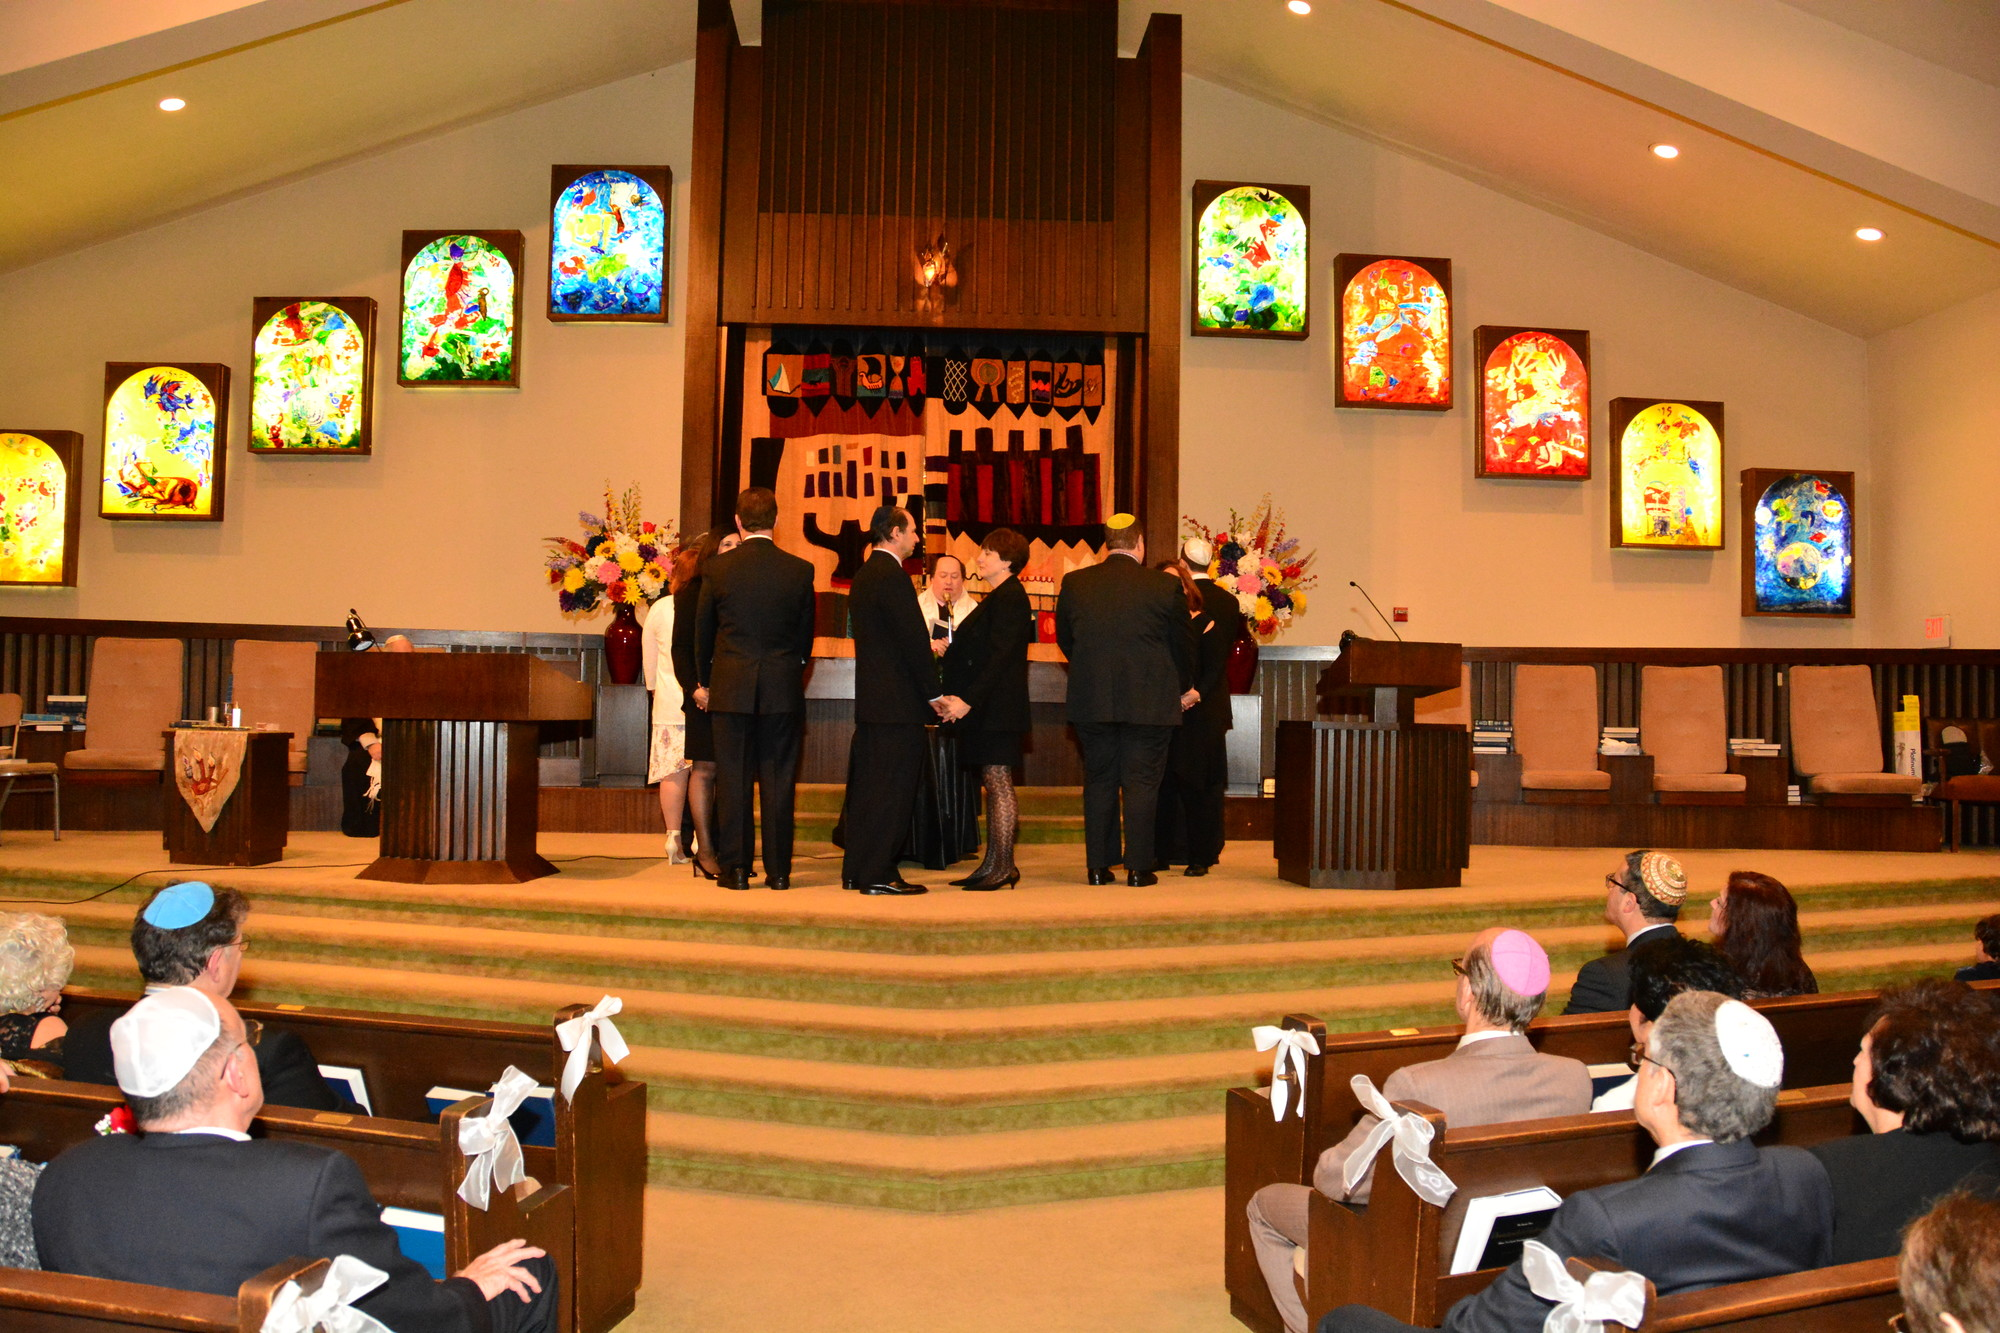 Rabbi Mickey Baum administered the vows of Jay and Susan Futterman, center.